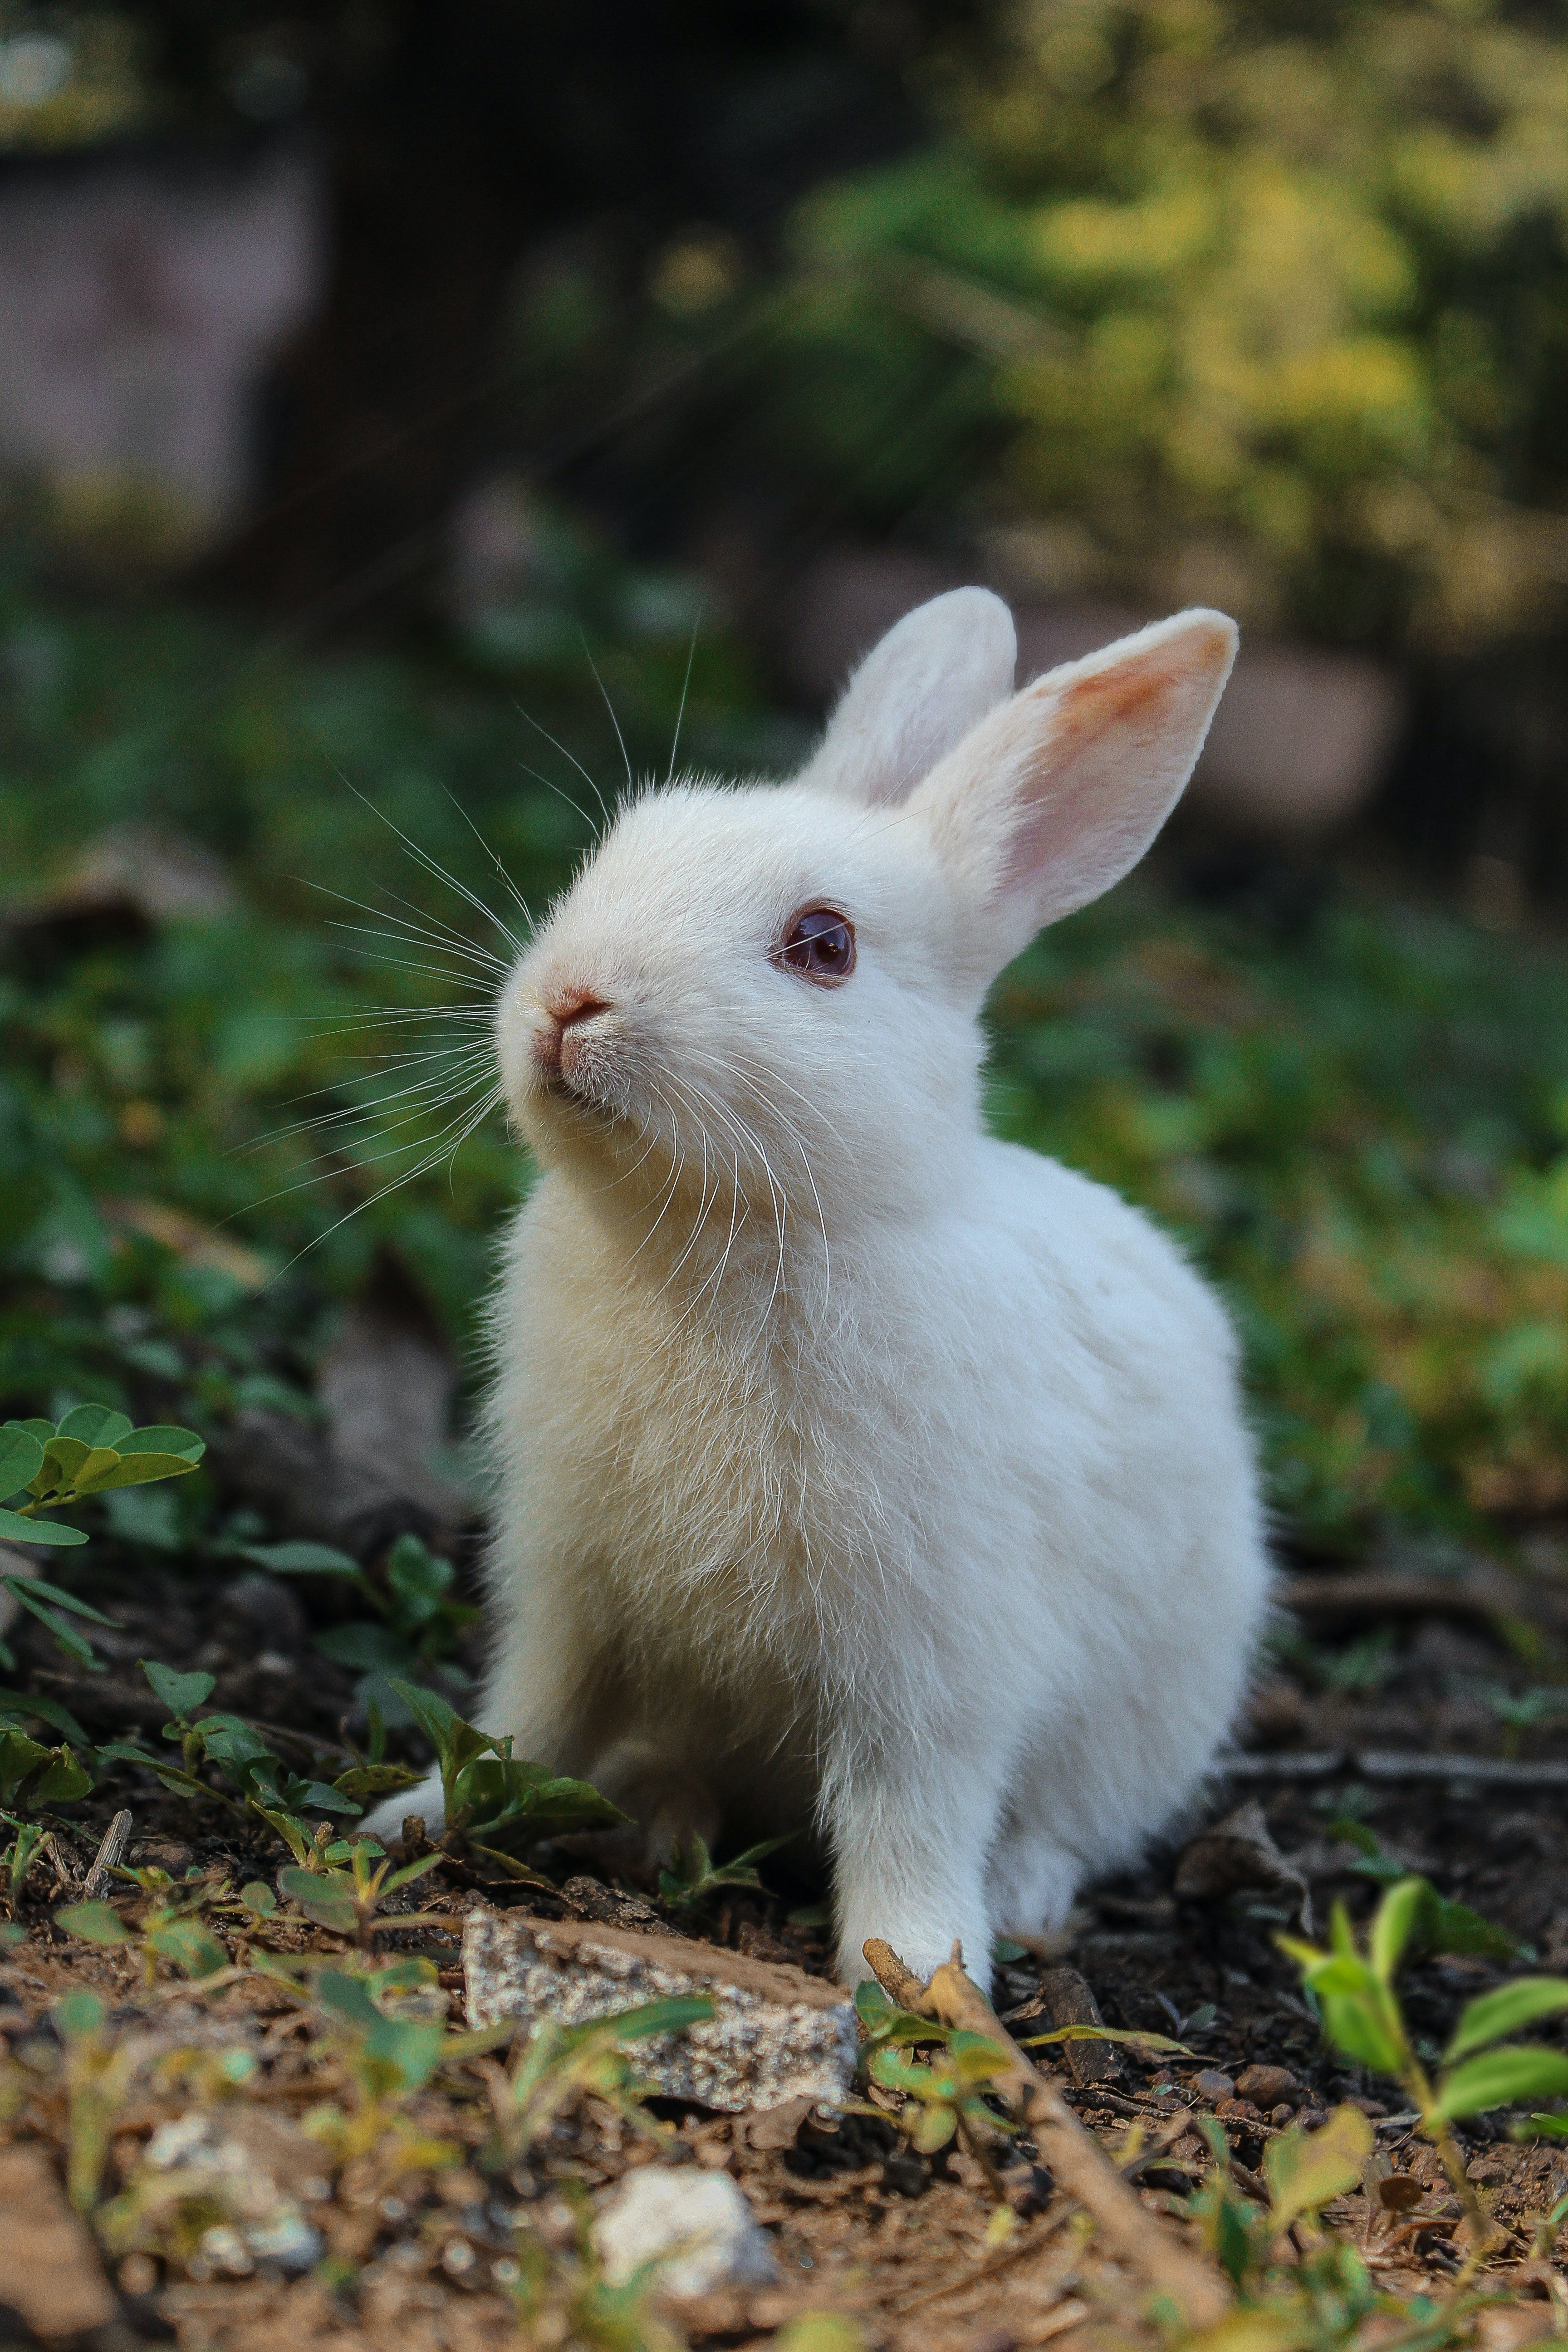 Pictured - A white rabbit on green grass | Source: Pexels